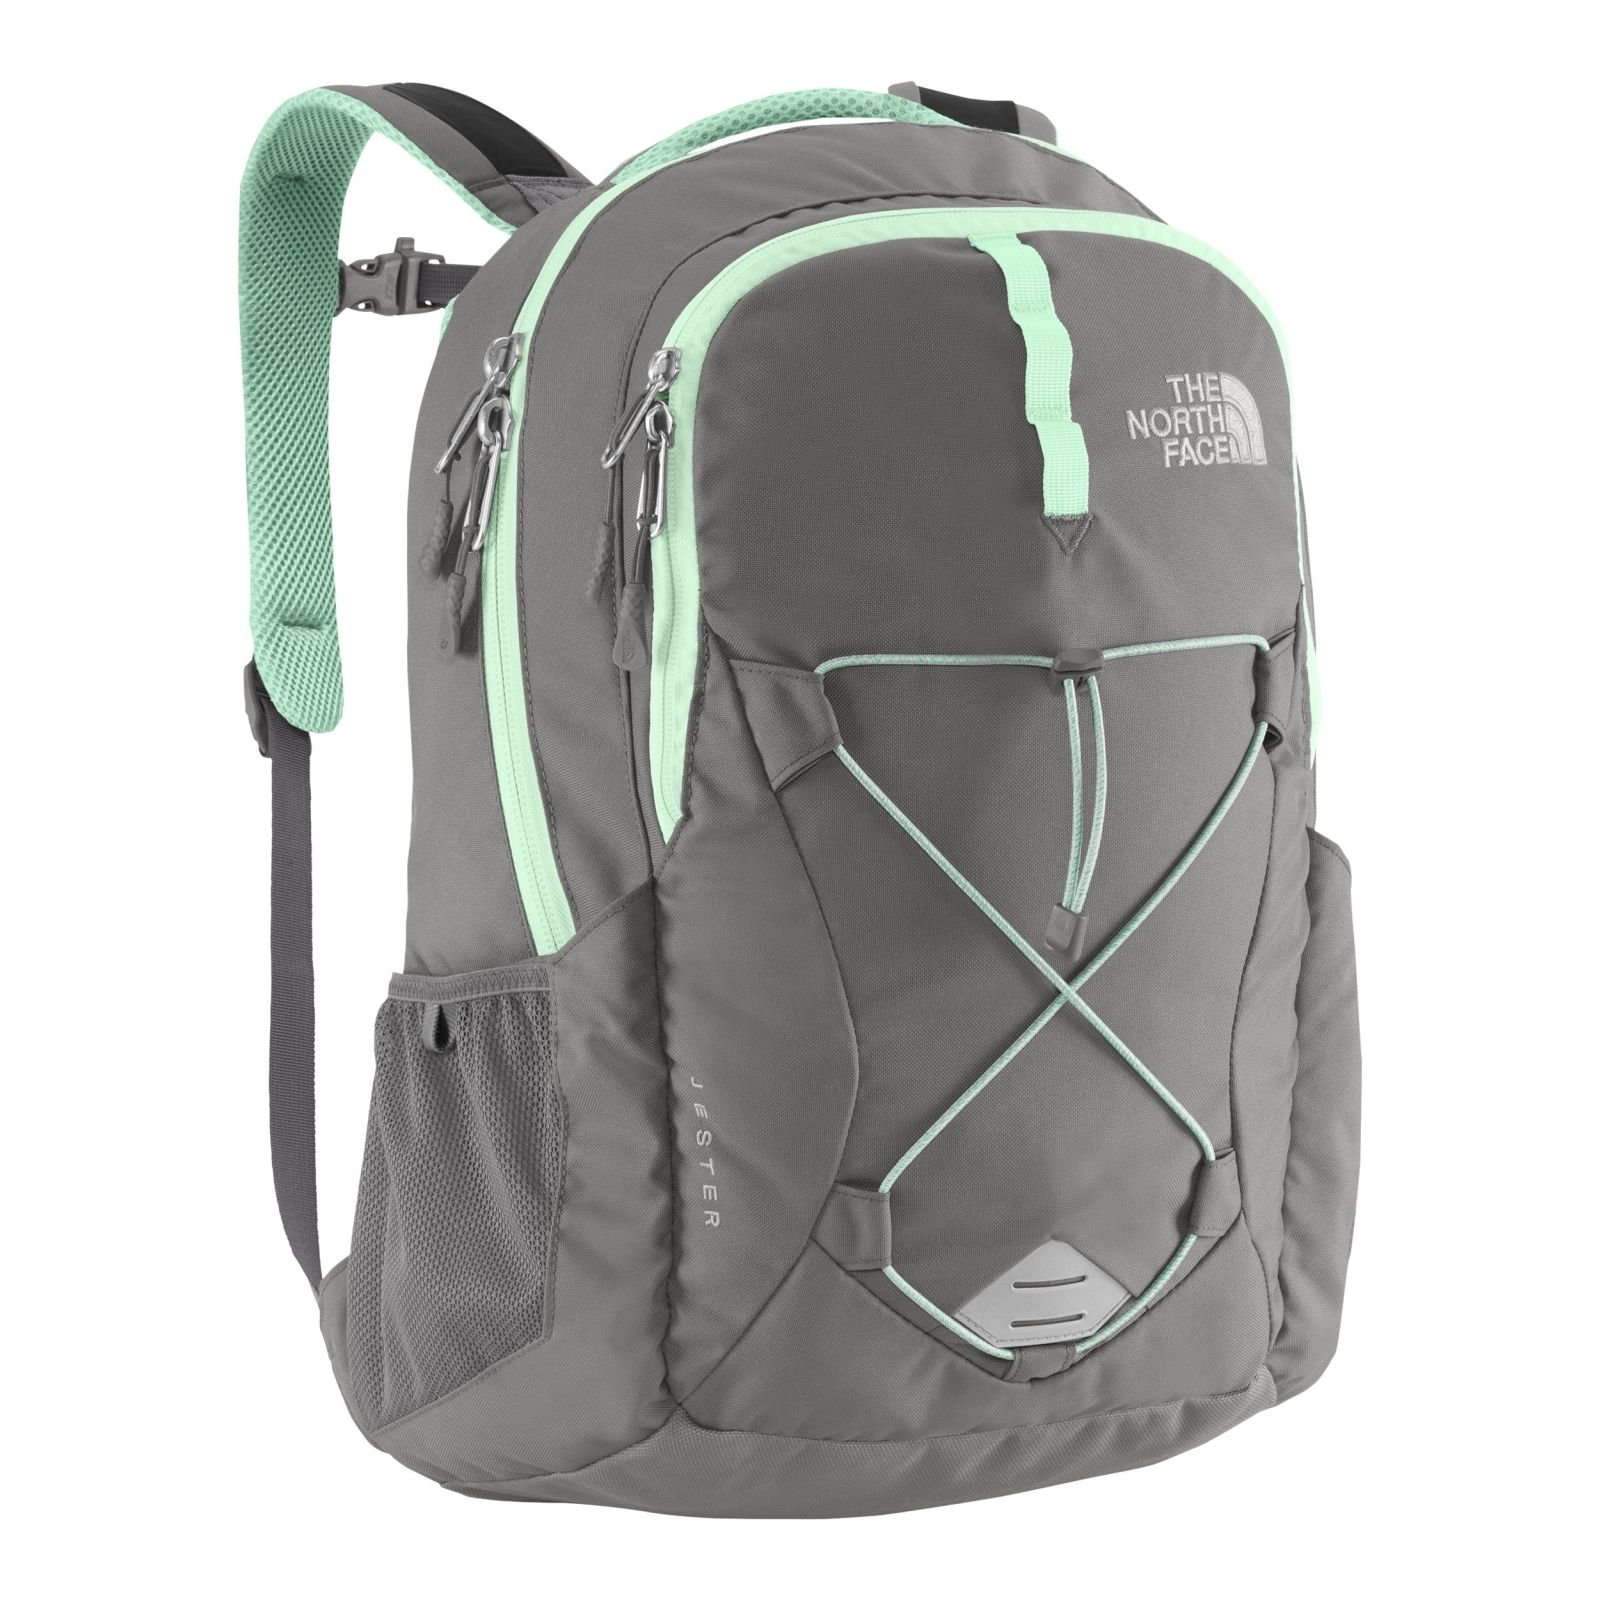 The North Face Women's Jester Zinc Grey/Surf Green by The North Face